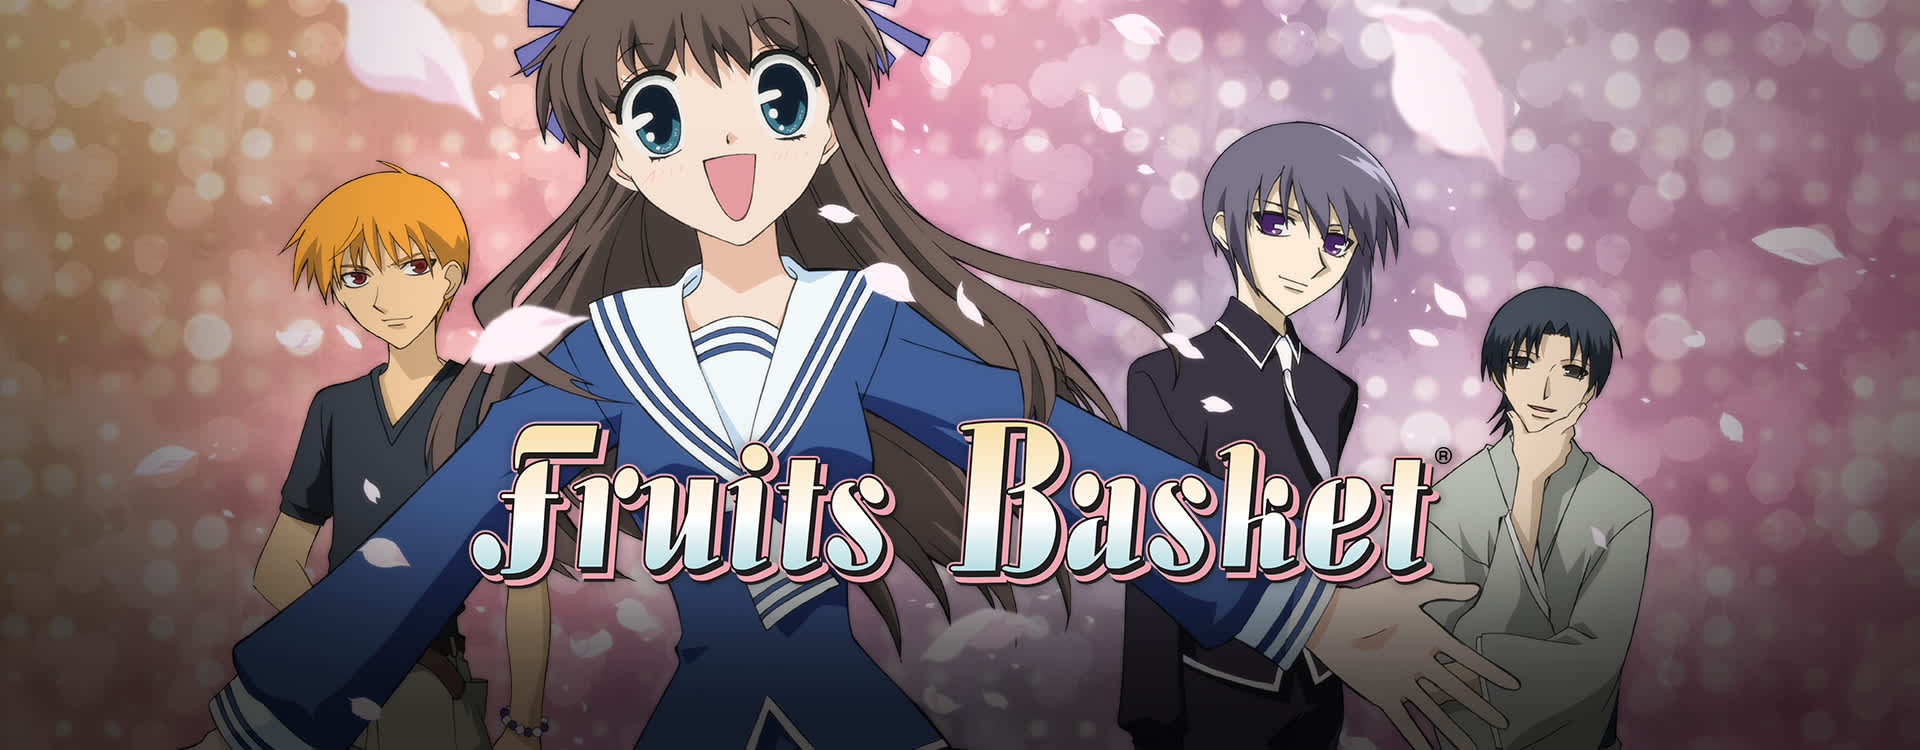 Stream Watch Fruits Basket Episodes Online